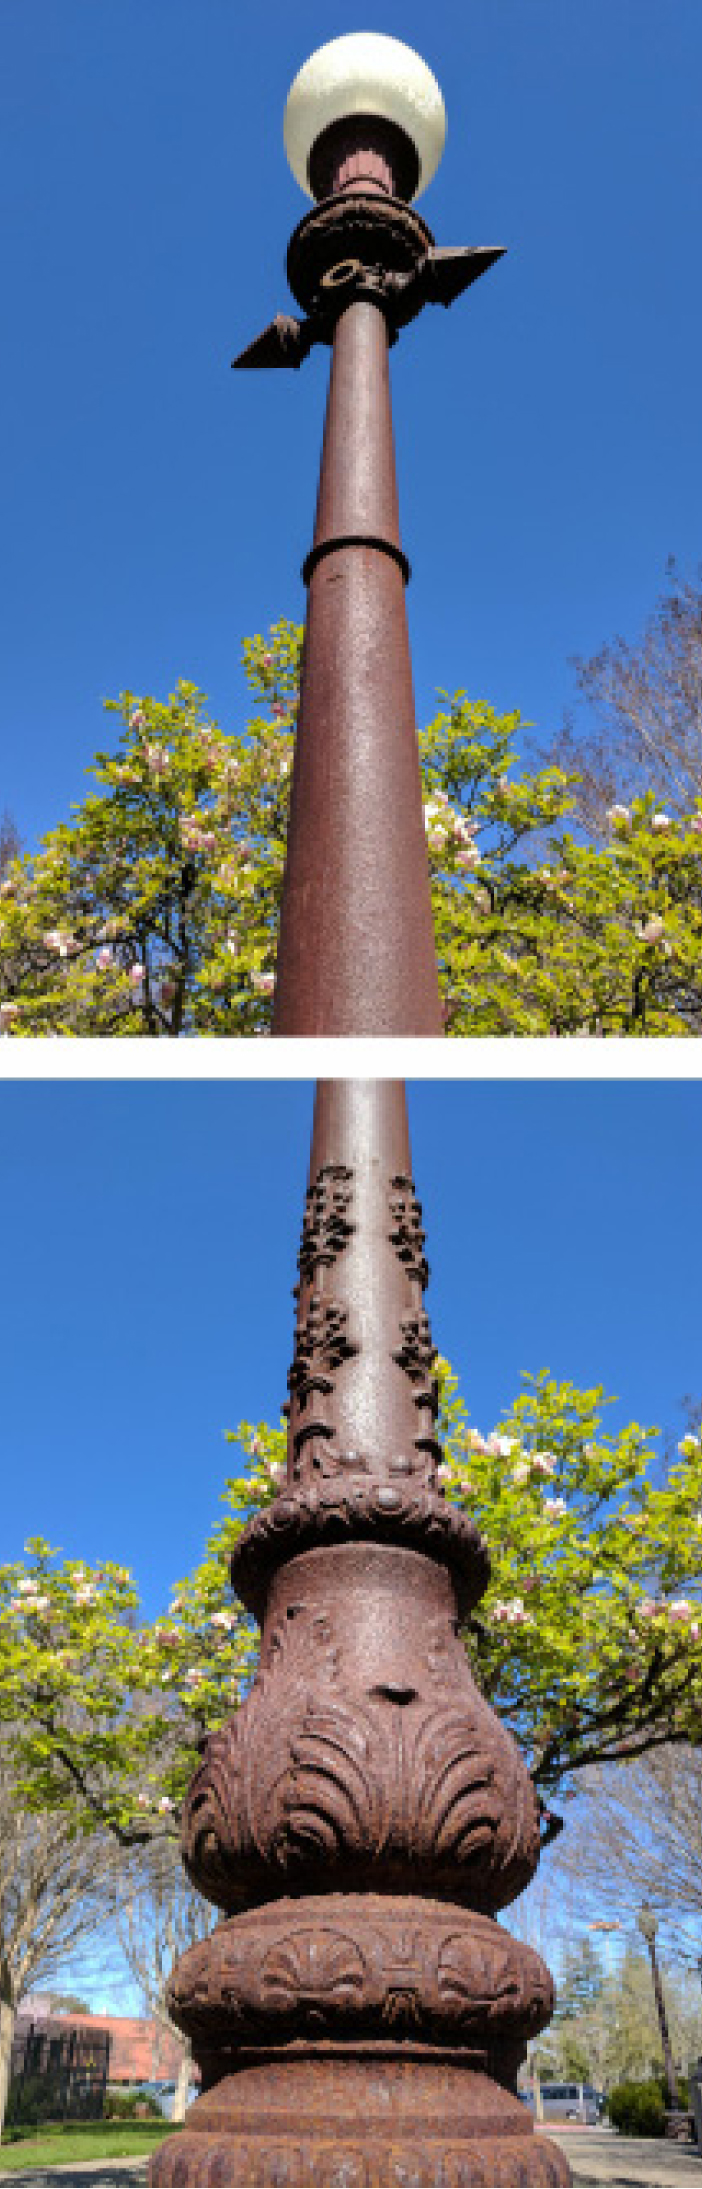 Where is this Hendy lamp post?